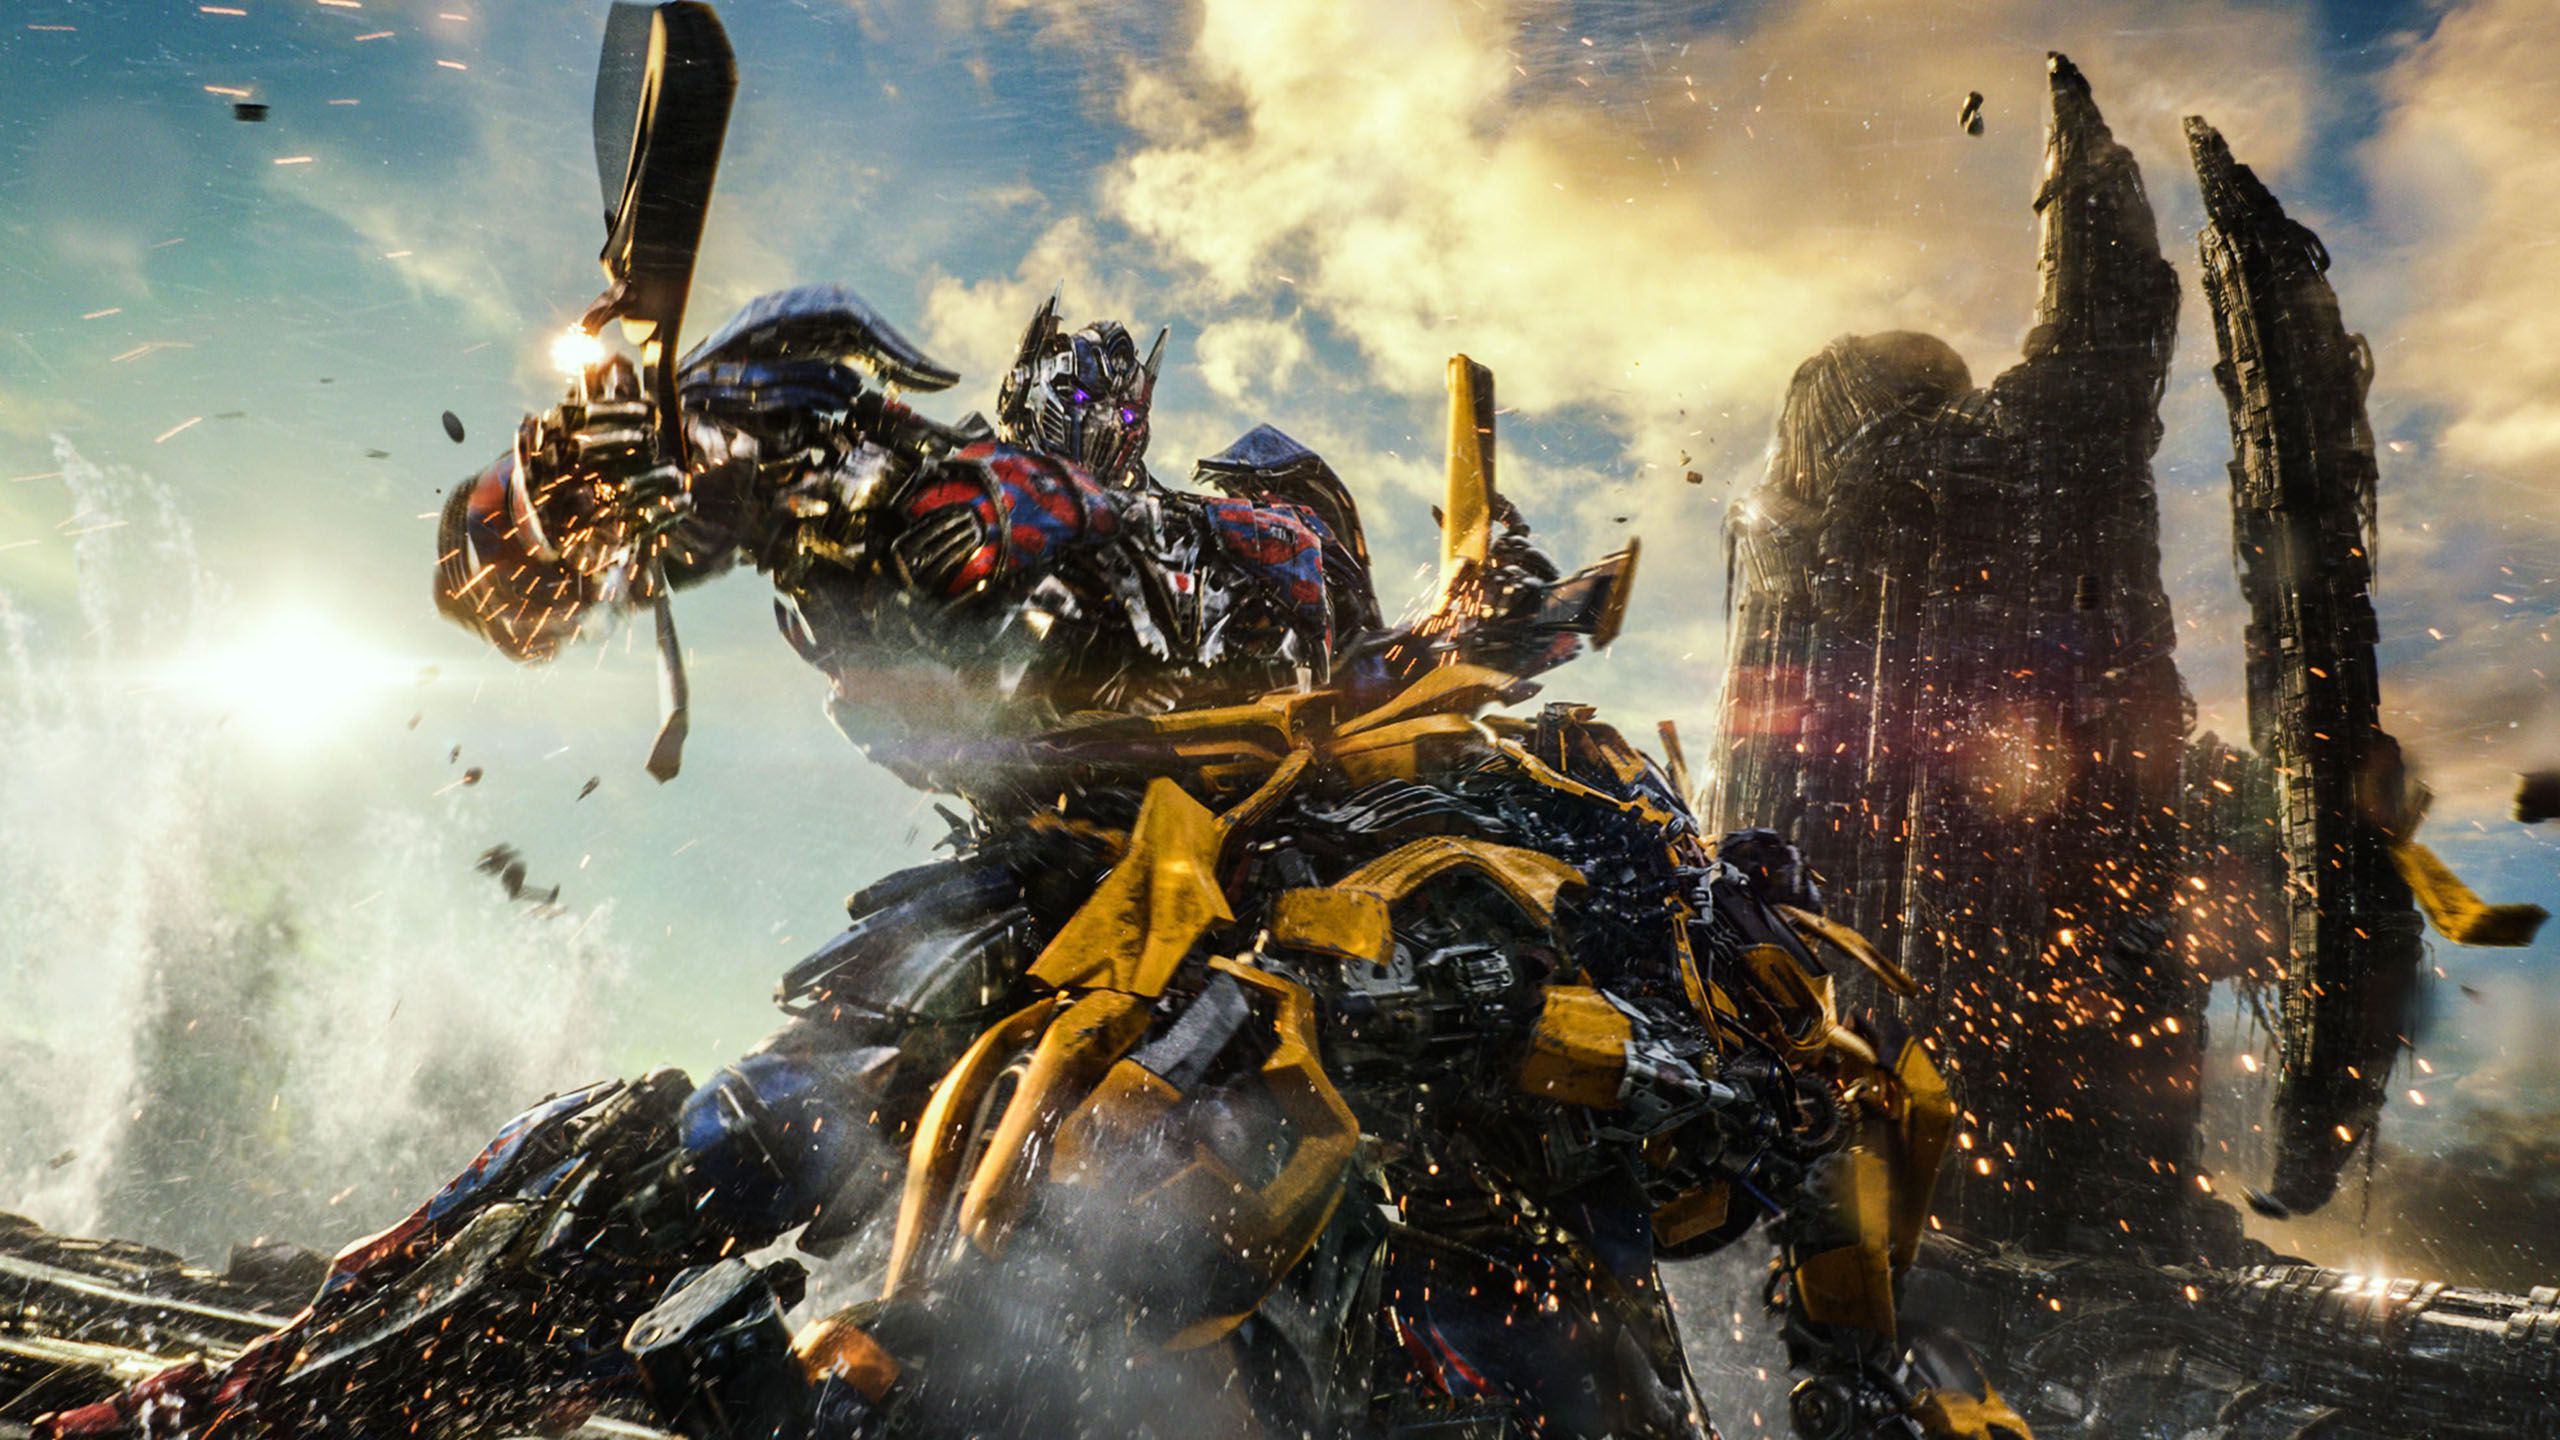 Transformers, debutto boom in sale Usa